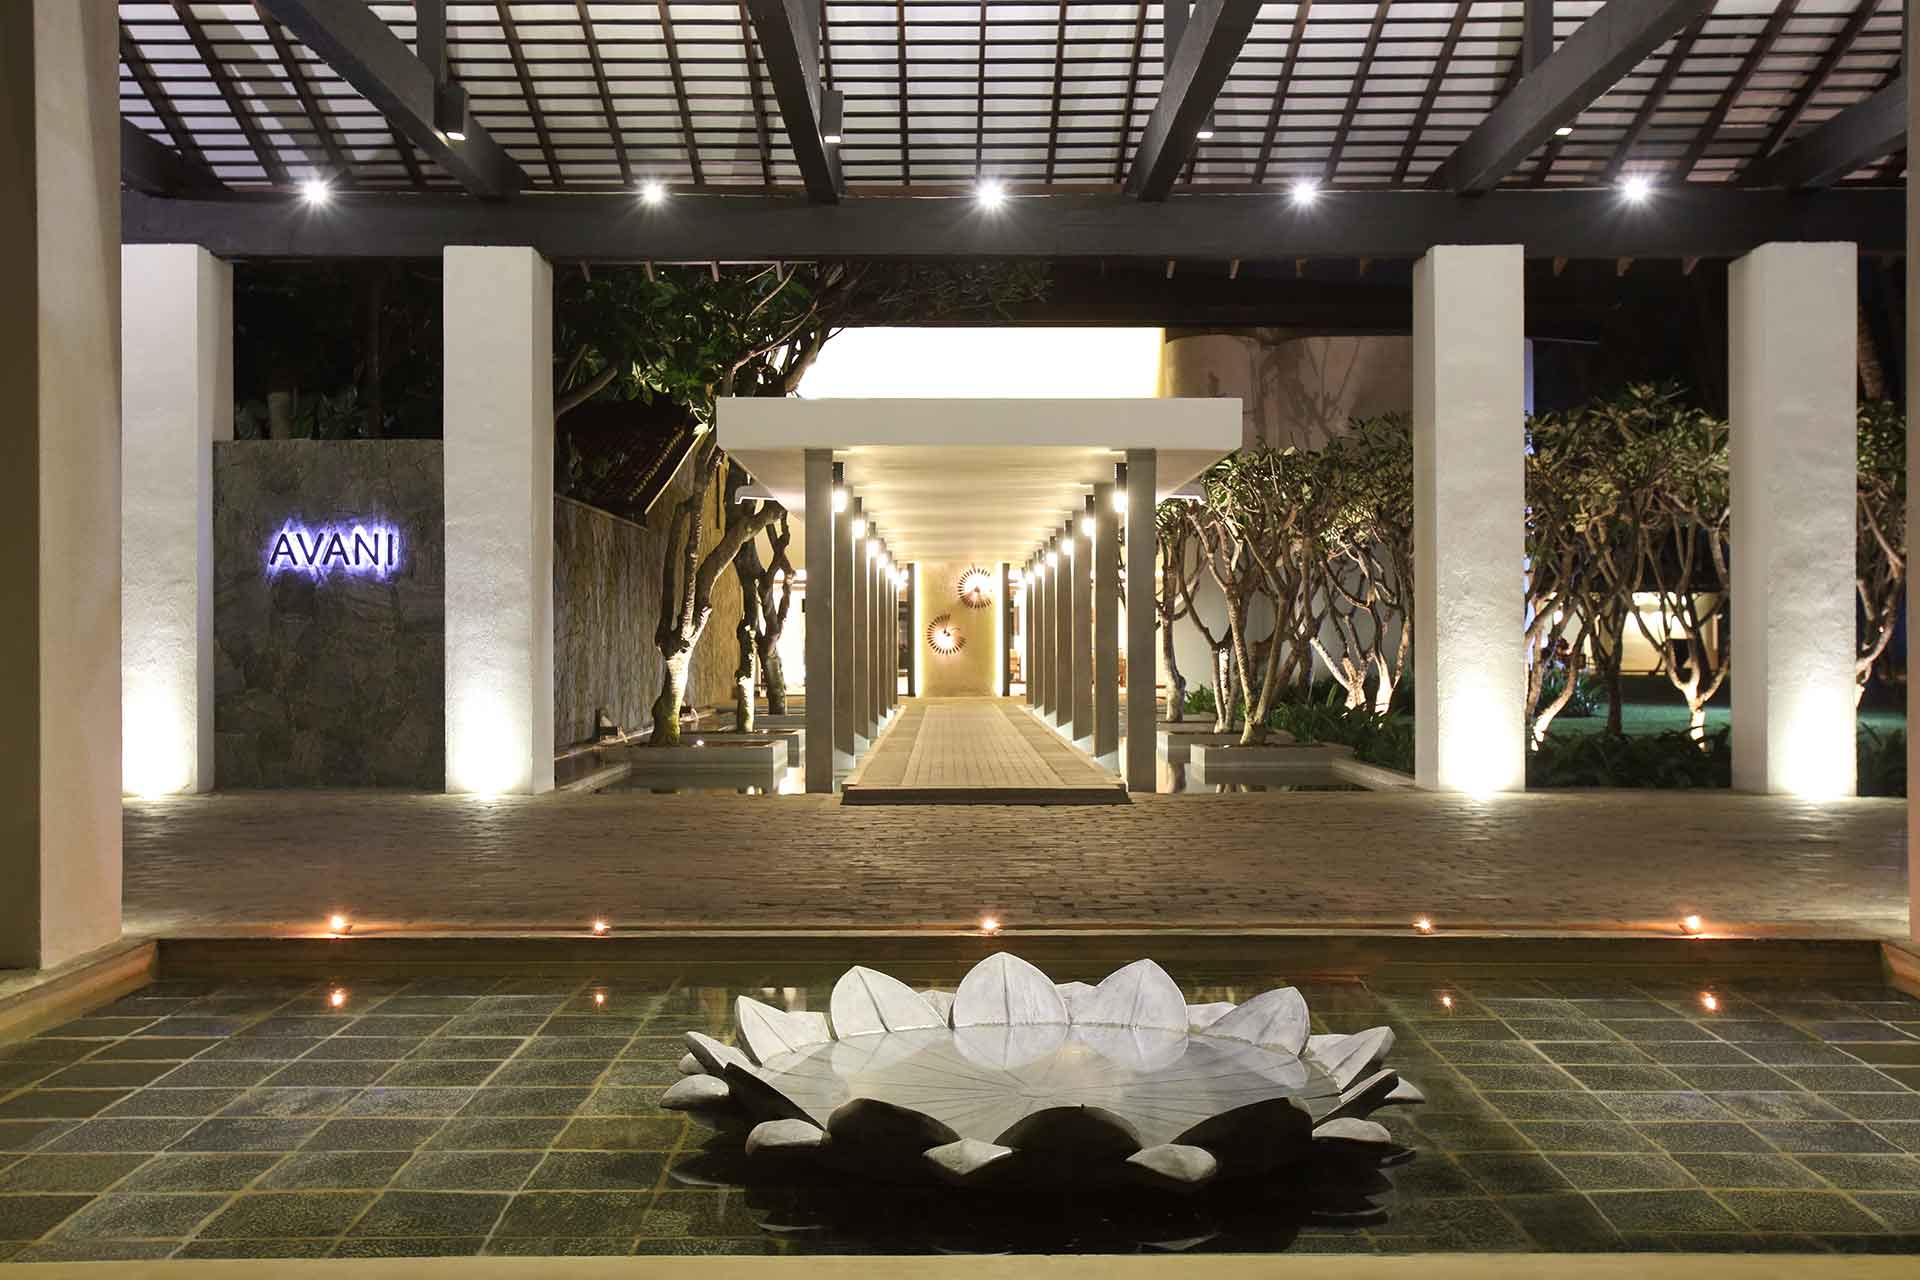 Entrance of AVANI Kalutara Resort at night